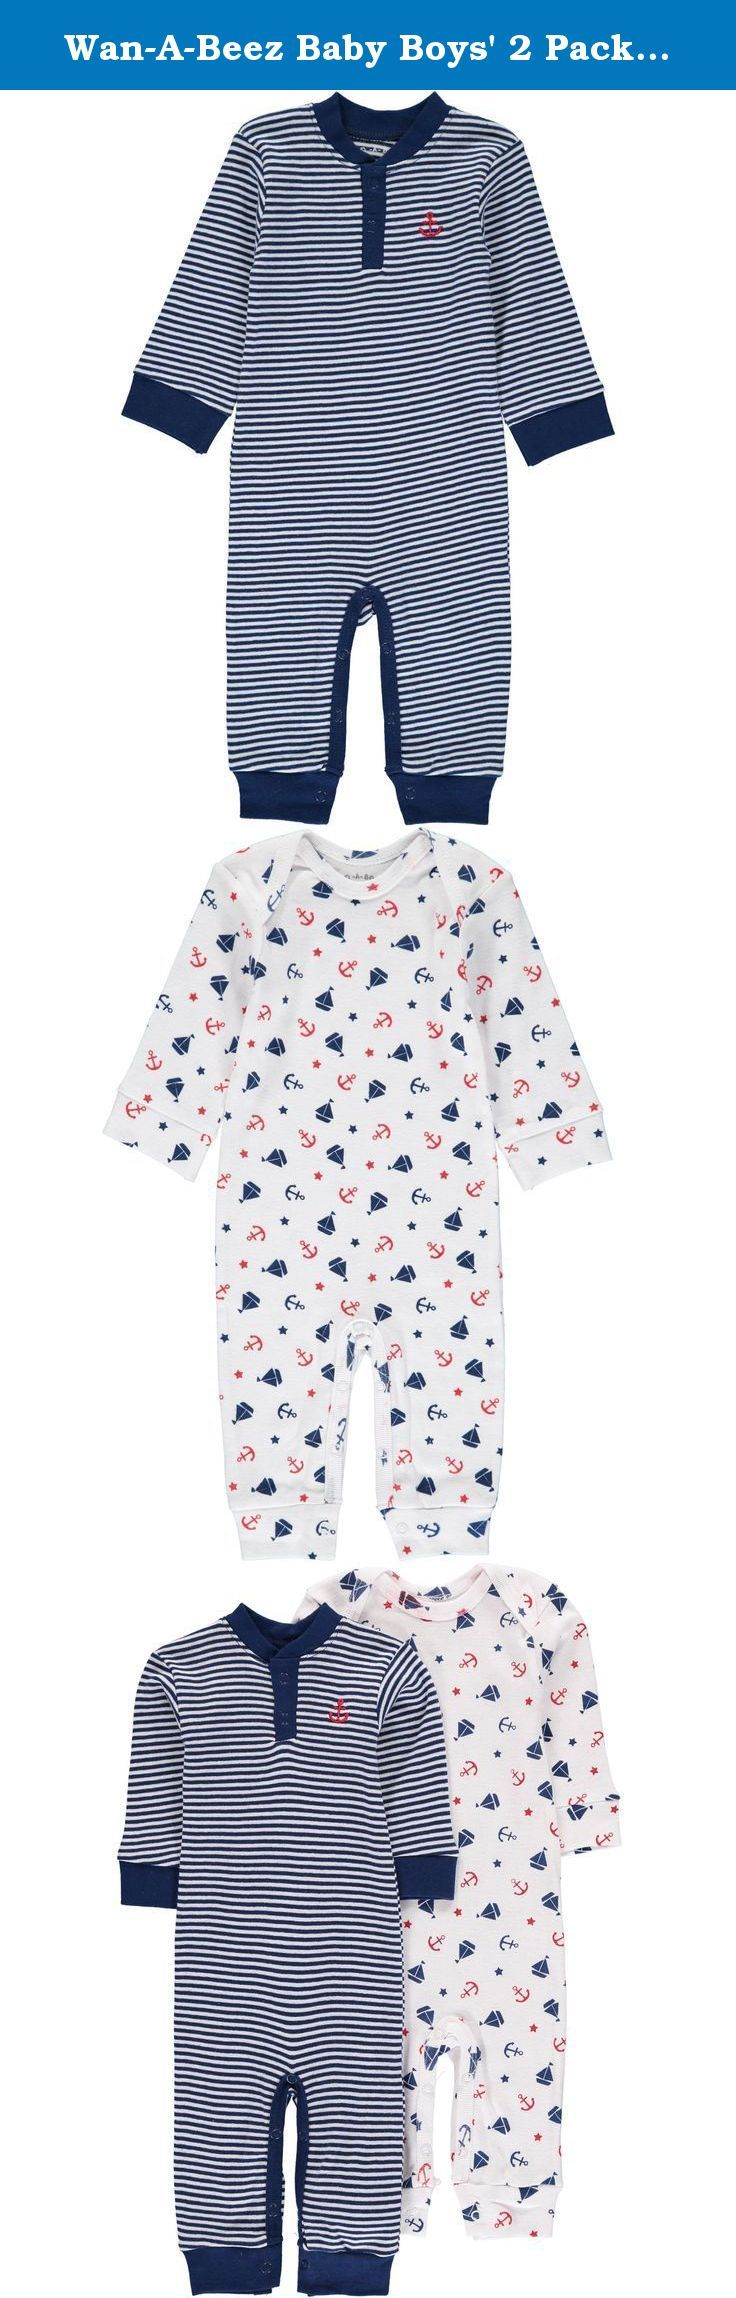 Wan-A-Beez Baby Boys' 2 Pack Printed Coverall (6-9 Months, Navy Nautical ). He will be ready to take on any adventure (or nap the day away) in these adorable printed coveralls! Each set includes an all-over screen printed sleeper with expandable shoulders for easy outfit changes when diapers get messy! The yarn-dyed stripe henley bodysuit features a sweet embroidered applique at the chest and high-quality snaps on reinforced panels to withstand change after change. The soft, cotton rib is...